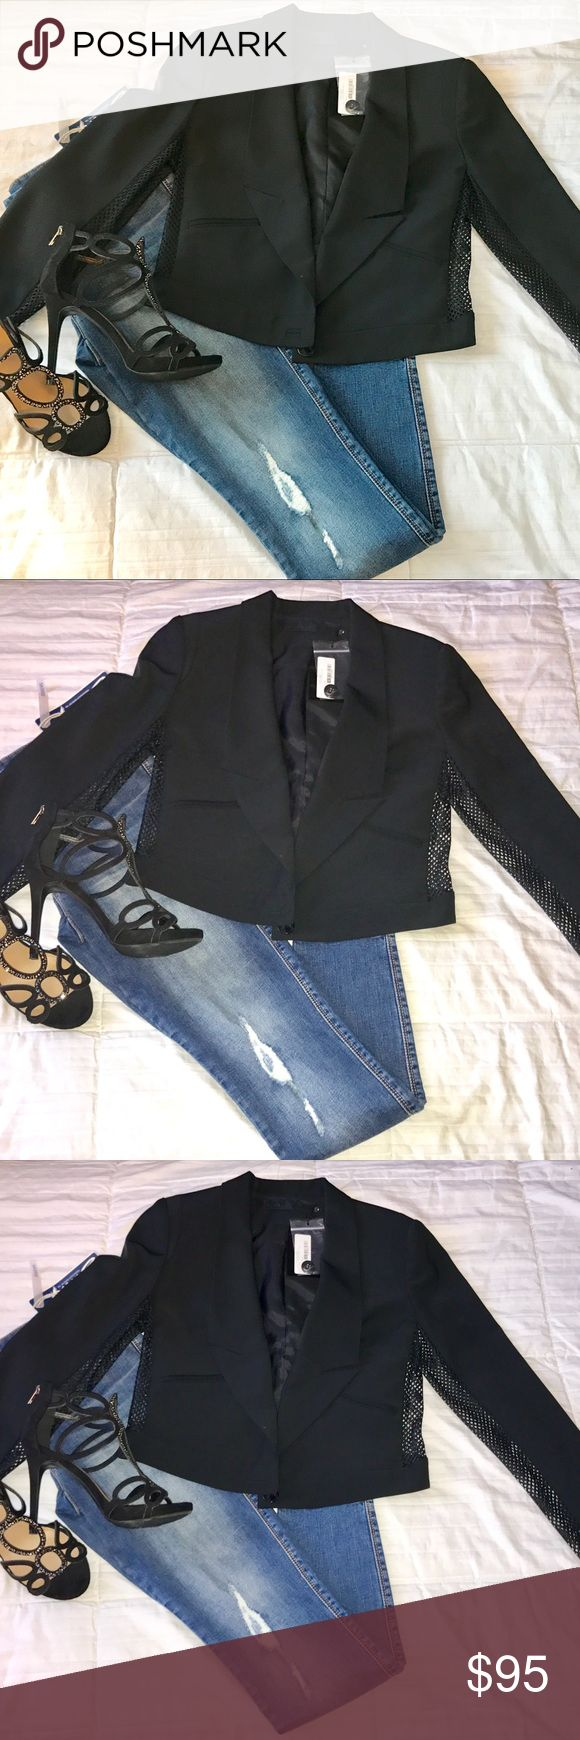 """L.A.M.B. - Tuxedo Lapel Cropped Wool Blend Jacket L.A.M.B. - NWT!! *Women's Black Tuxedo Lapel Cropped Wool Blend Jacket.  Long sleeves 26"""", Single Button front closure, 2 front welt pockets, Cropped measuring 20"""" from top to bottom,  mesh look on sides and under arm & fully Lined bodice.  Bust: 17"""" from armpit to armpit, (taken while laying flat). Shell: 43% wool, 53% polyester, 4% elastase. Dry clean. L.A.M.B. Jackets & Coats Blazers"""